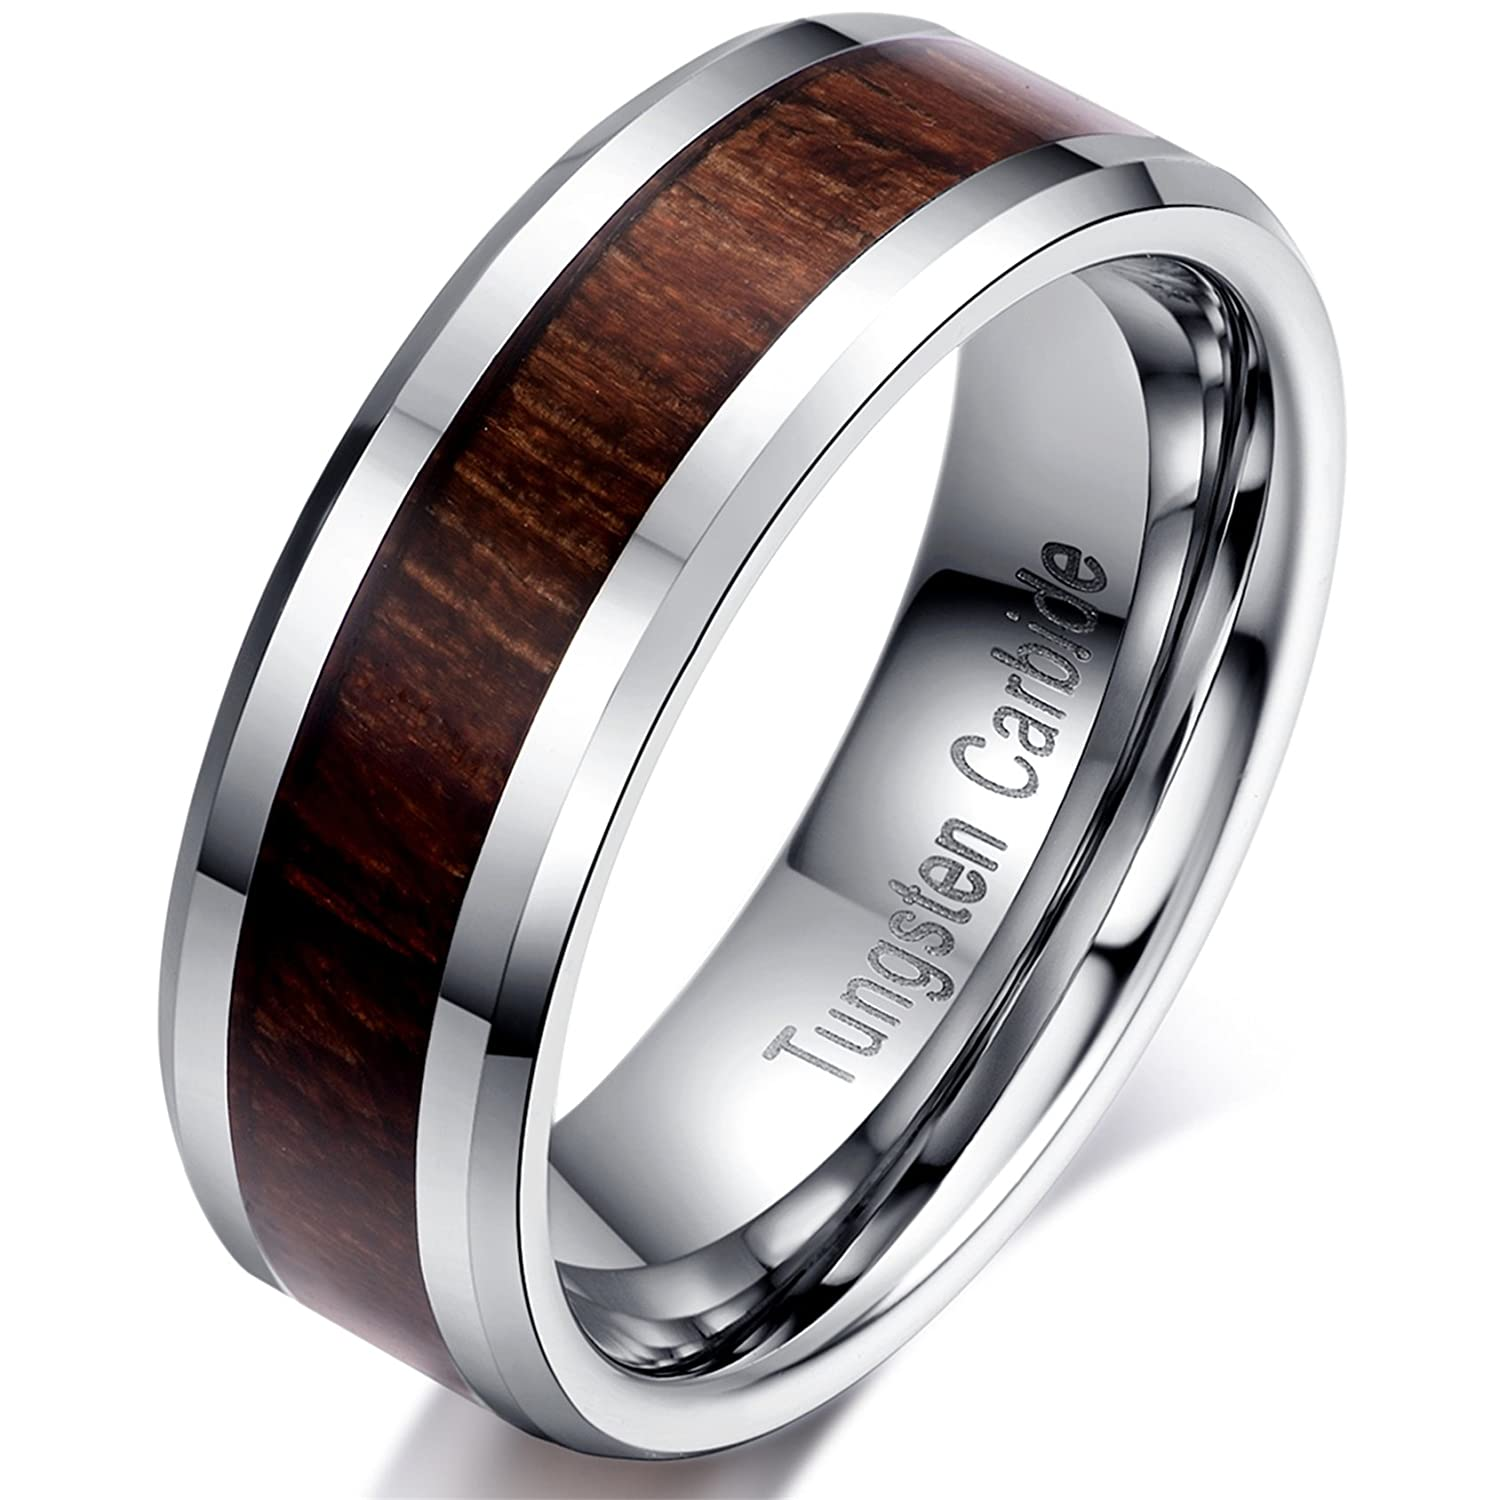 6mm Silver Tungsten Carbide Wood Inlay Men Women Vintage Wedding Ring Engagement Promise Band Comfort Fit Satemi